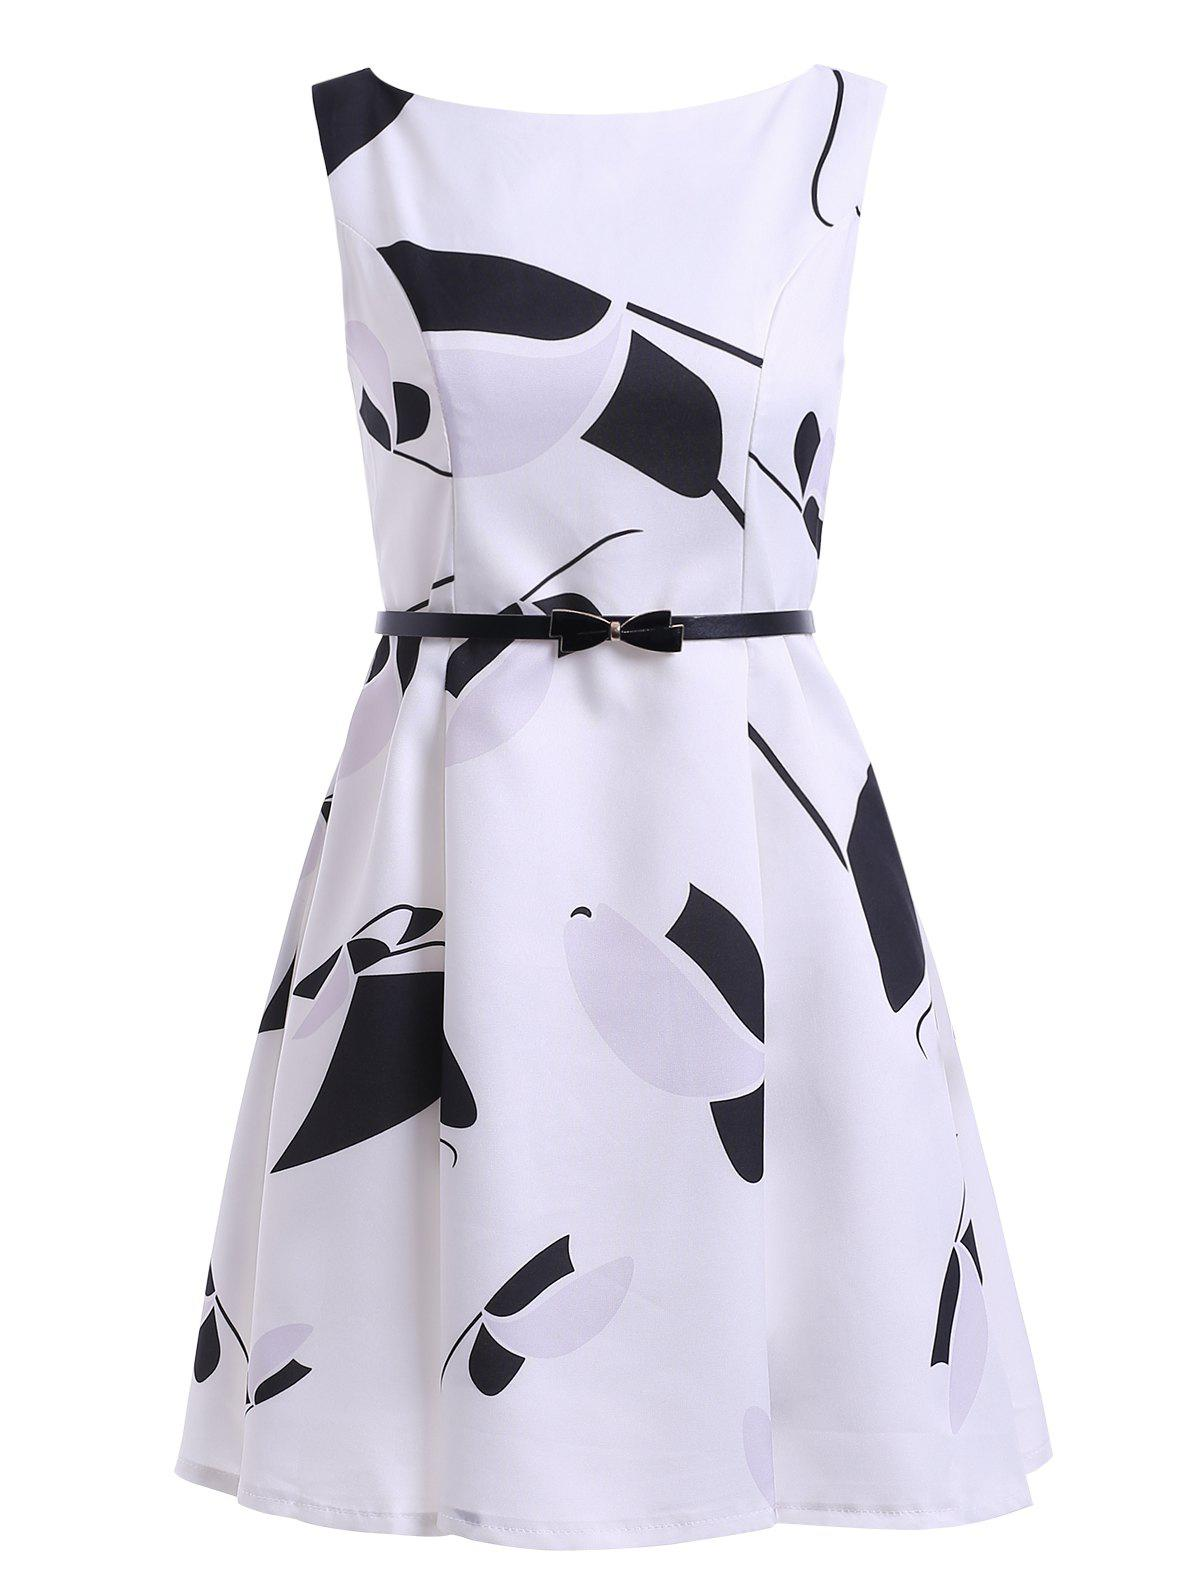 Stylish Print Sleeveless Belted Round Neck Dress For Women - WHITE M